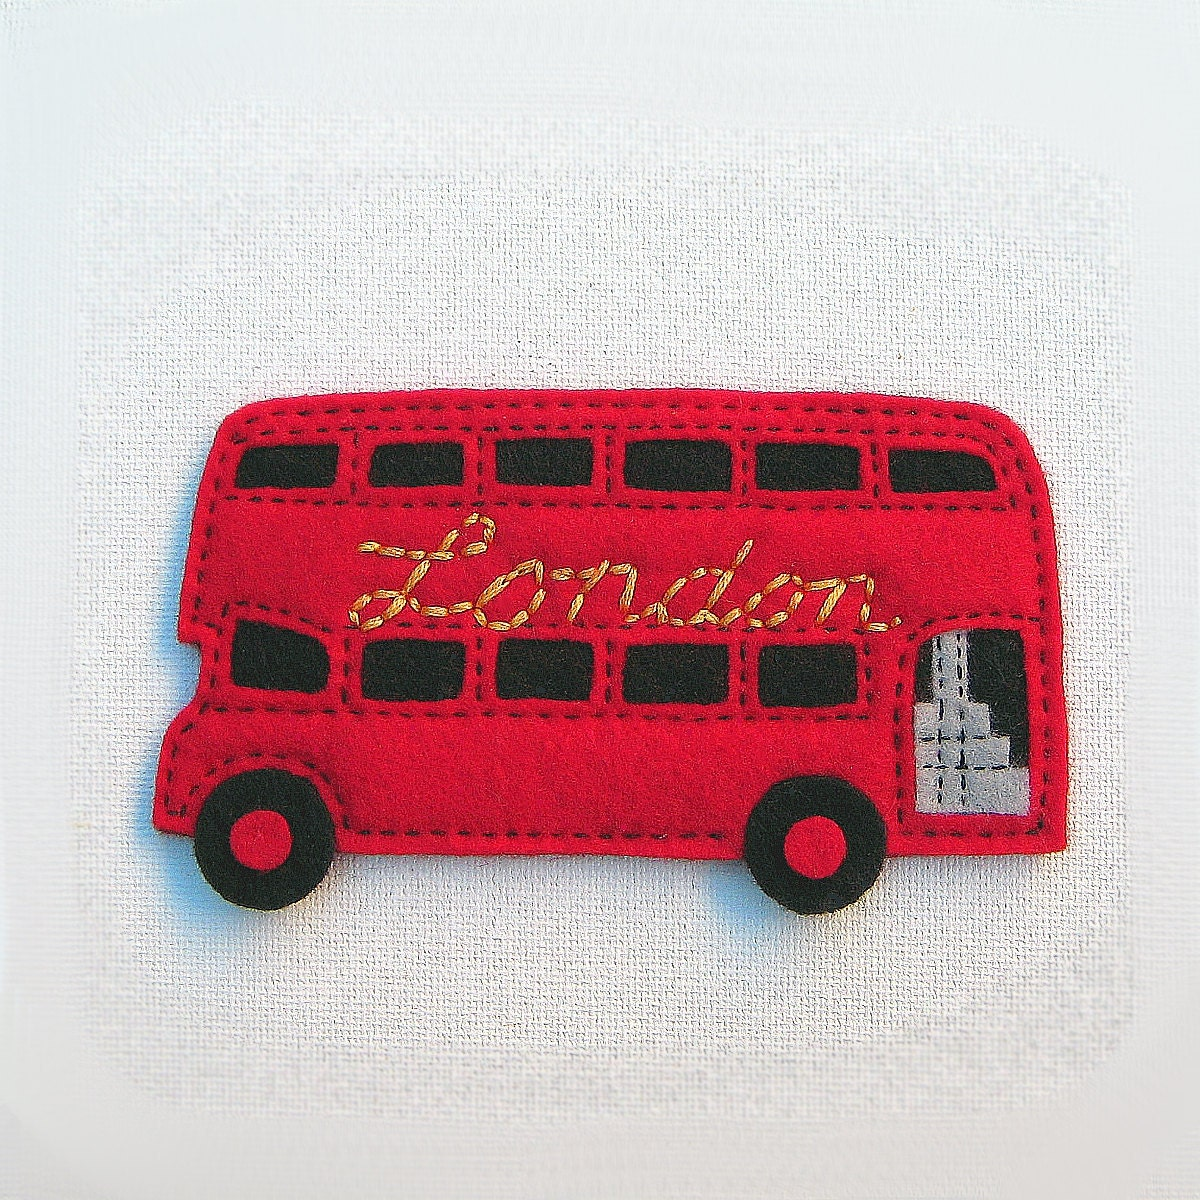 London Double Decker Bus Red Felt Fridge Magnet - moddyboy80